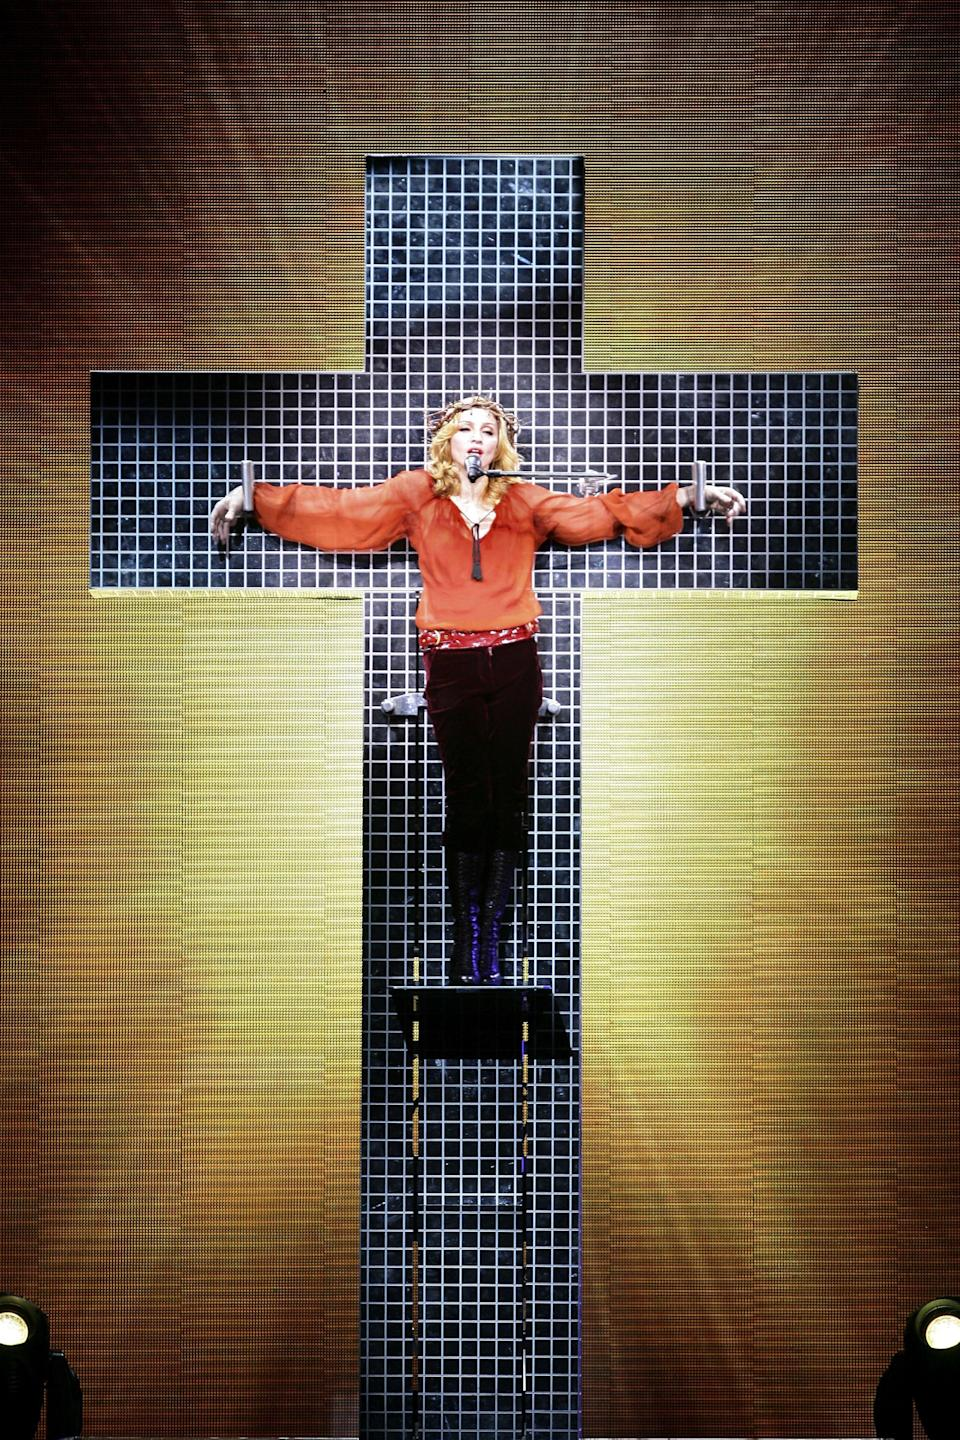 """<p>She's still into the Catholic stuff, though! In her most literal tribute to Jesus Christ yet, she belted the 1986 ballad """"<a href=""""https://www.youtube.com/watch?v=2JvK3U2gpsQ"""" rel=""""nofollow noopener"""" target=""""_blank"""" data-ylk=""""slk:Live to Tell"""" class=""""link rapid-noclick-resp"""">Live to Tell</a> """" while mock-crucified to a disco-fied cross for her 2006 Confessions Tour — once again angering the Catholic Church, as well as the Church of England. """"I don't think Jesus would be mad at me and the message I'm trying to send,"""" <a href=""""https://www.npr.org/templates/story/story.php?storyId=5658956"""" rel=""""nofollow noopener"""" target=""""_blank"""" data-ylk=""""slk:Madonna told the Daily News"""" class=""""link rapid-noclick-resp"""">Madonna told the <em>Daily News</em></a> of the incident.</p><span class=""""copyright"""">Photo: Dave Hogan/Getty Images.</span>"""